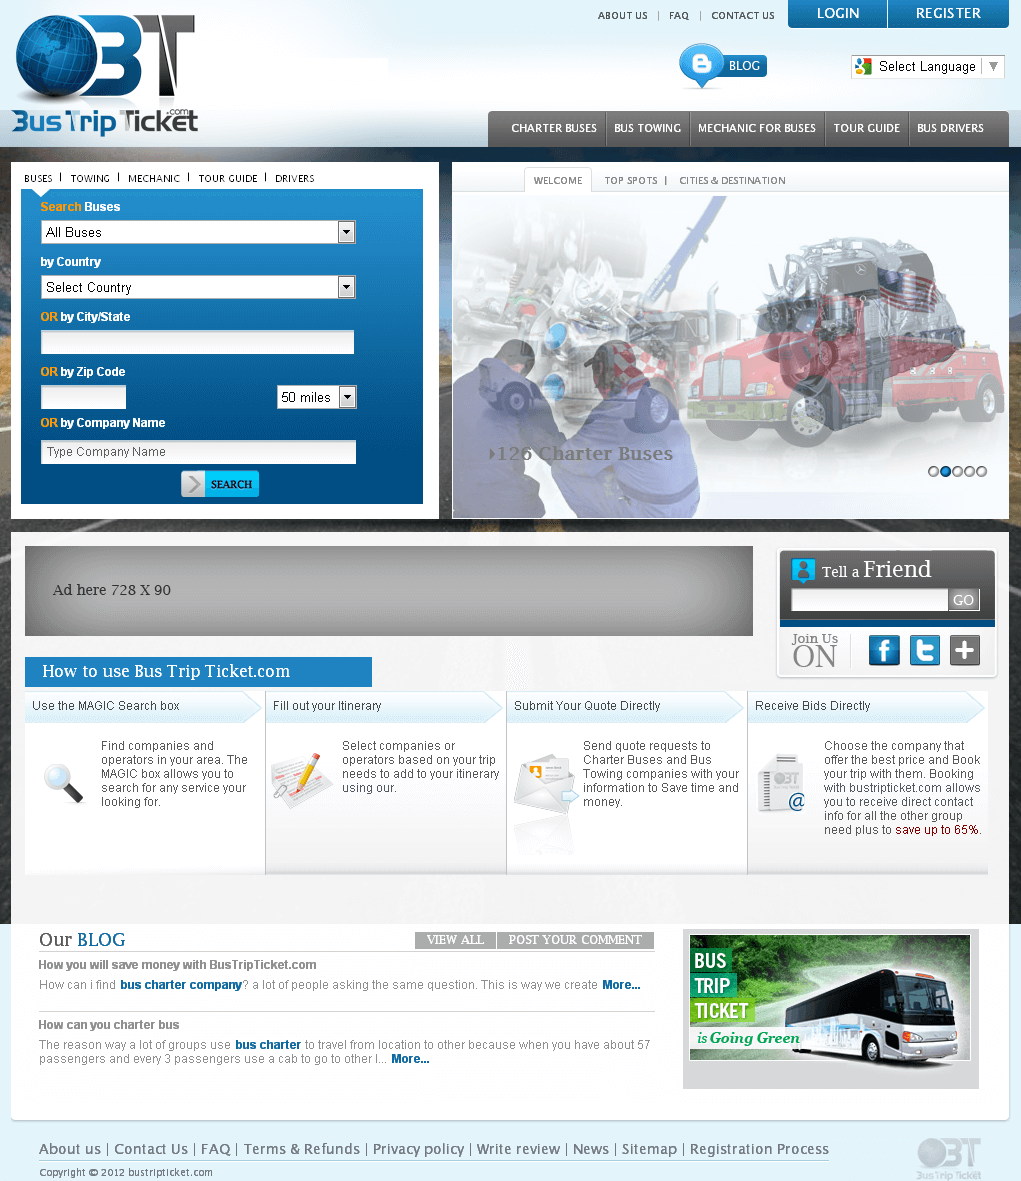 Website for Travel 'Bus Trip Ticket' Using PHP – Bus Search Engine